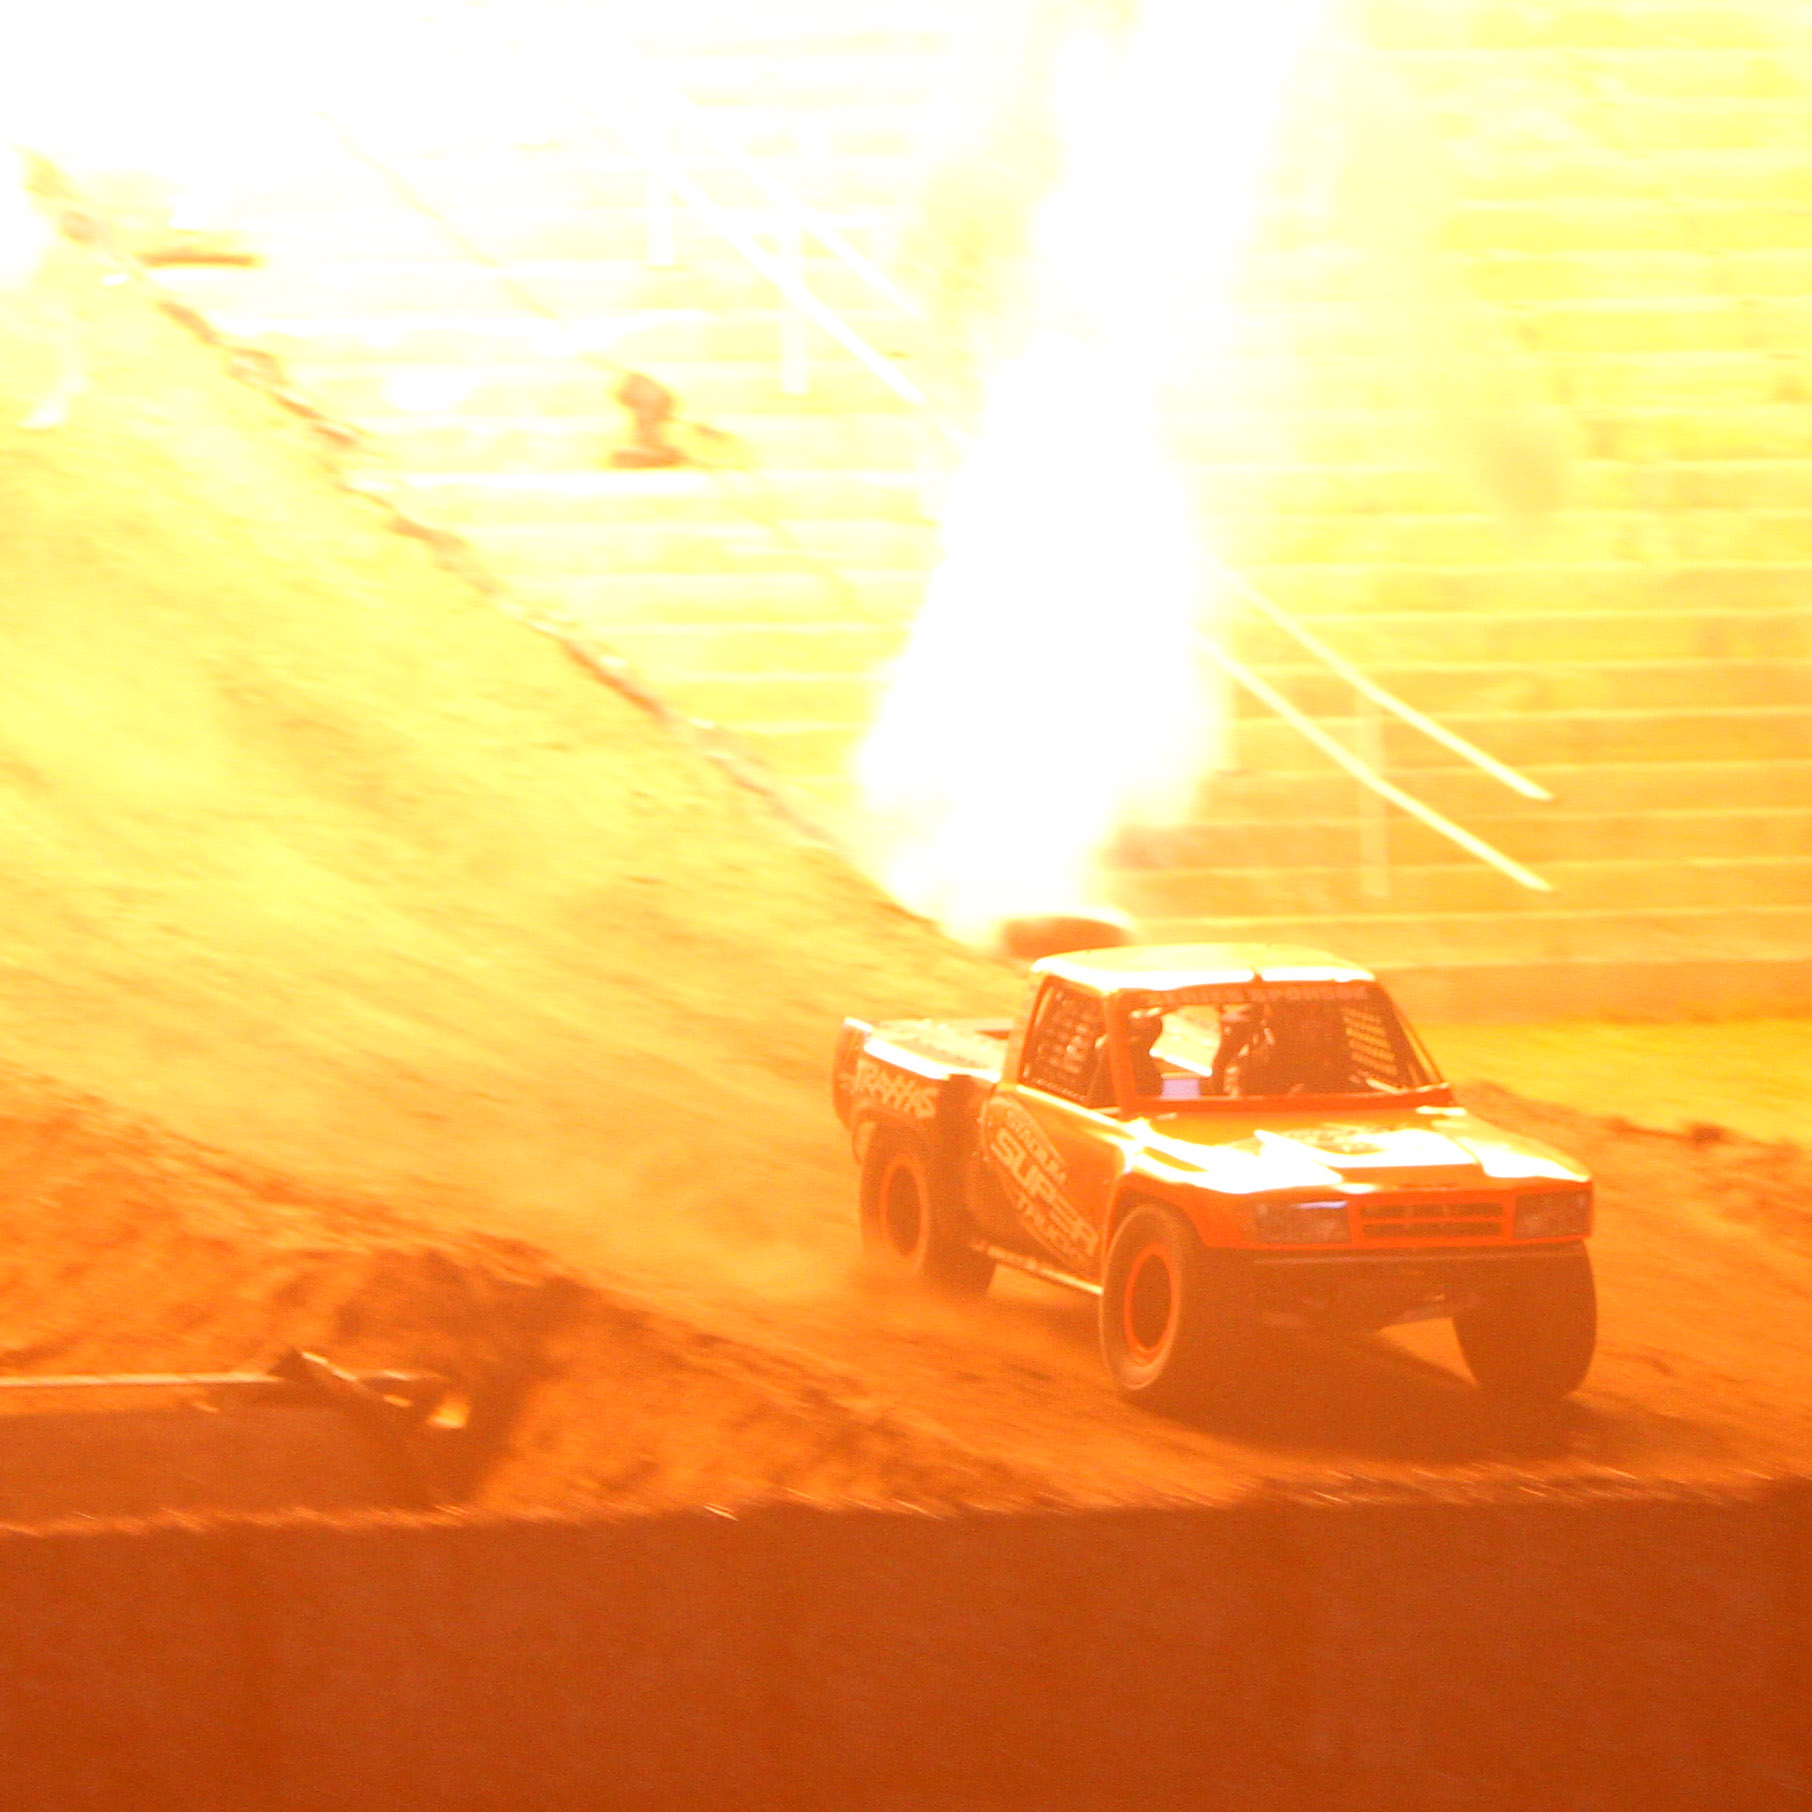 Robby Gordon Launches New Race Series, Stadium Super Trucks